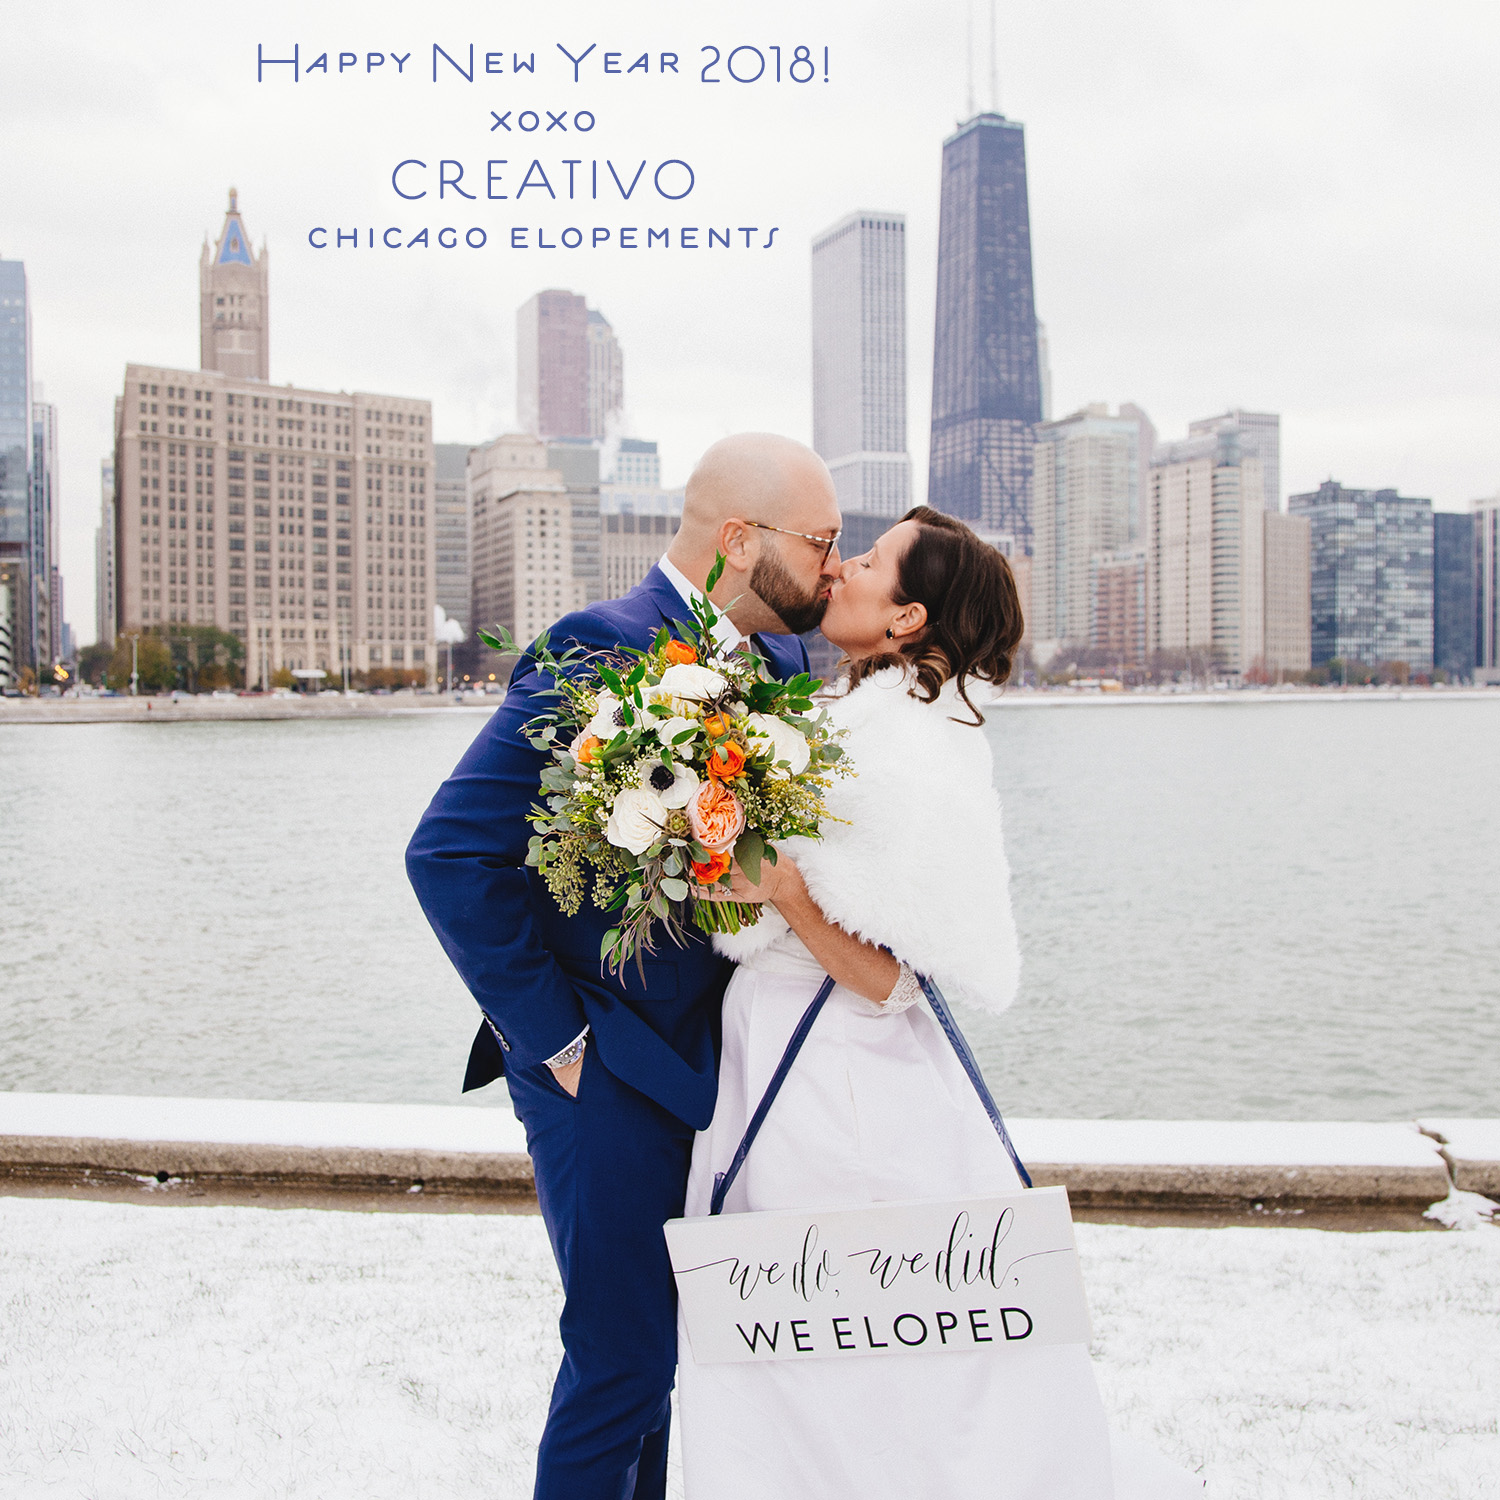 Creativo-Elopements-Happy-New-Year-2018.jpg